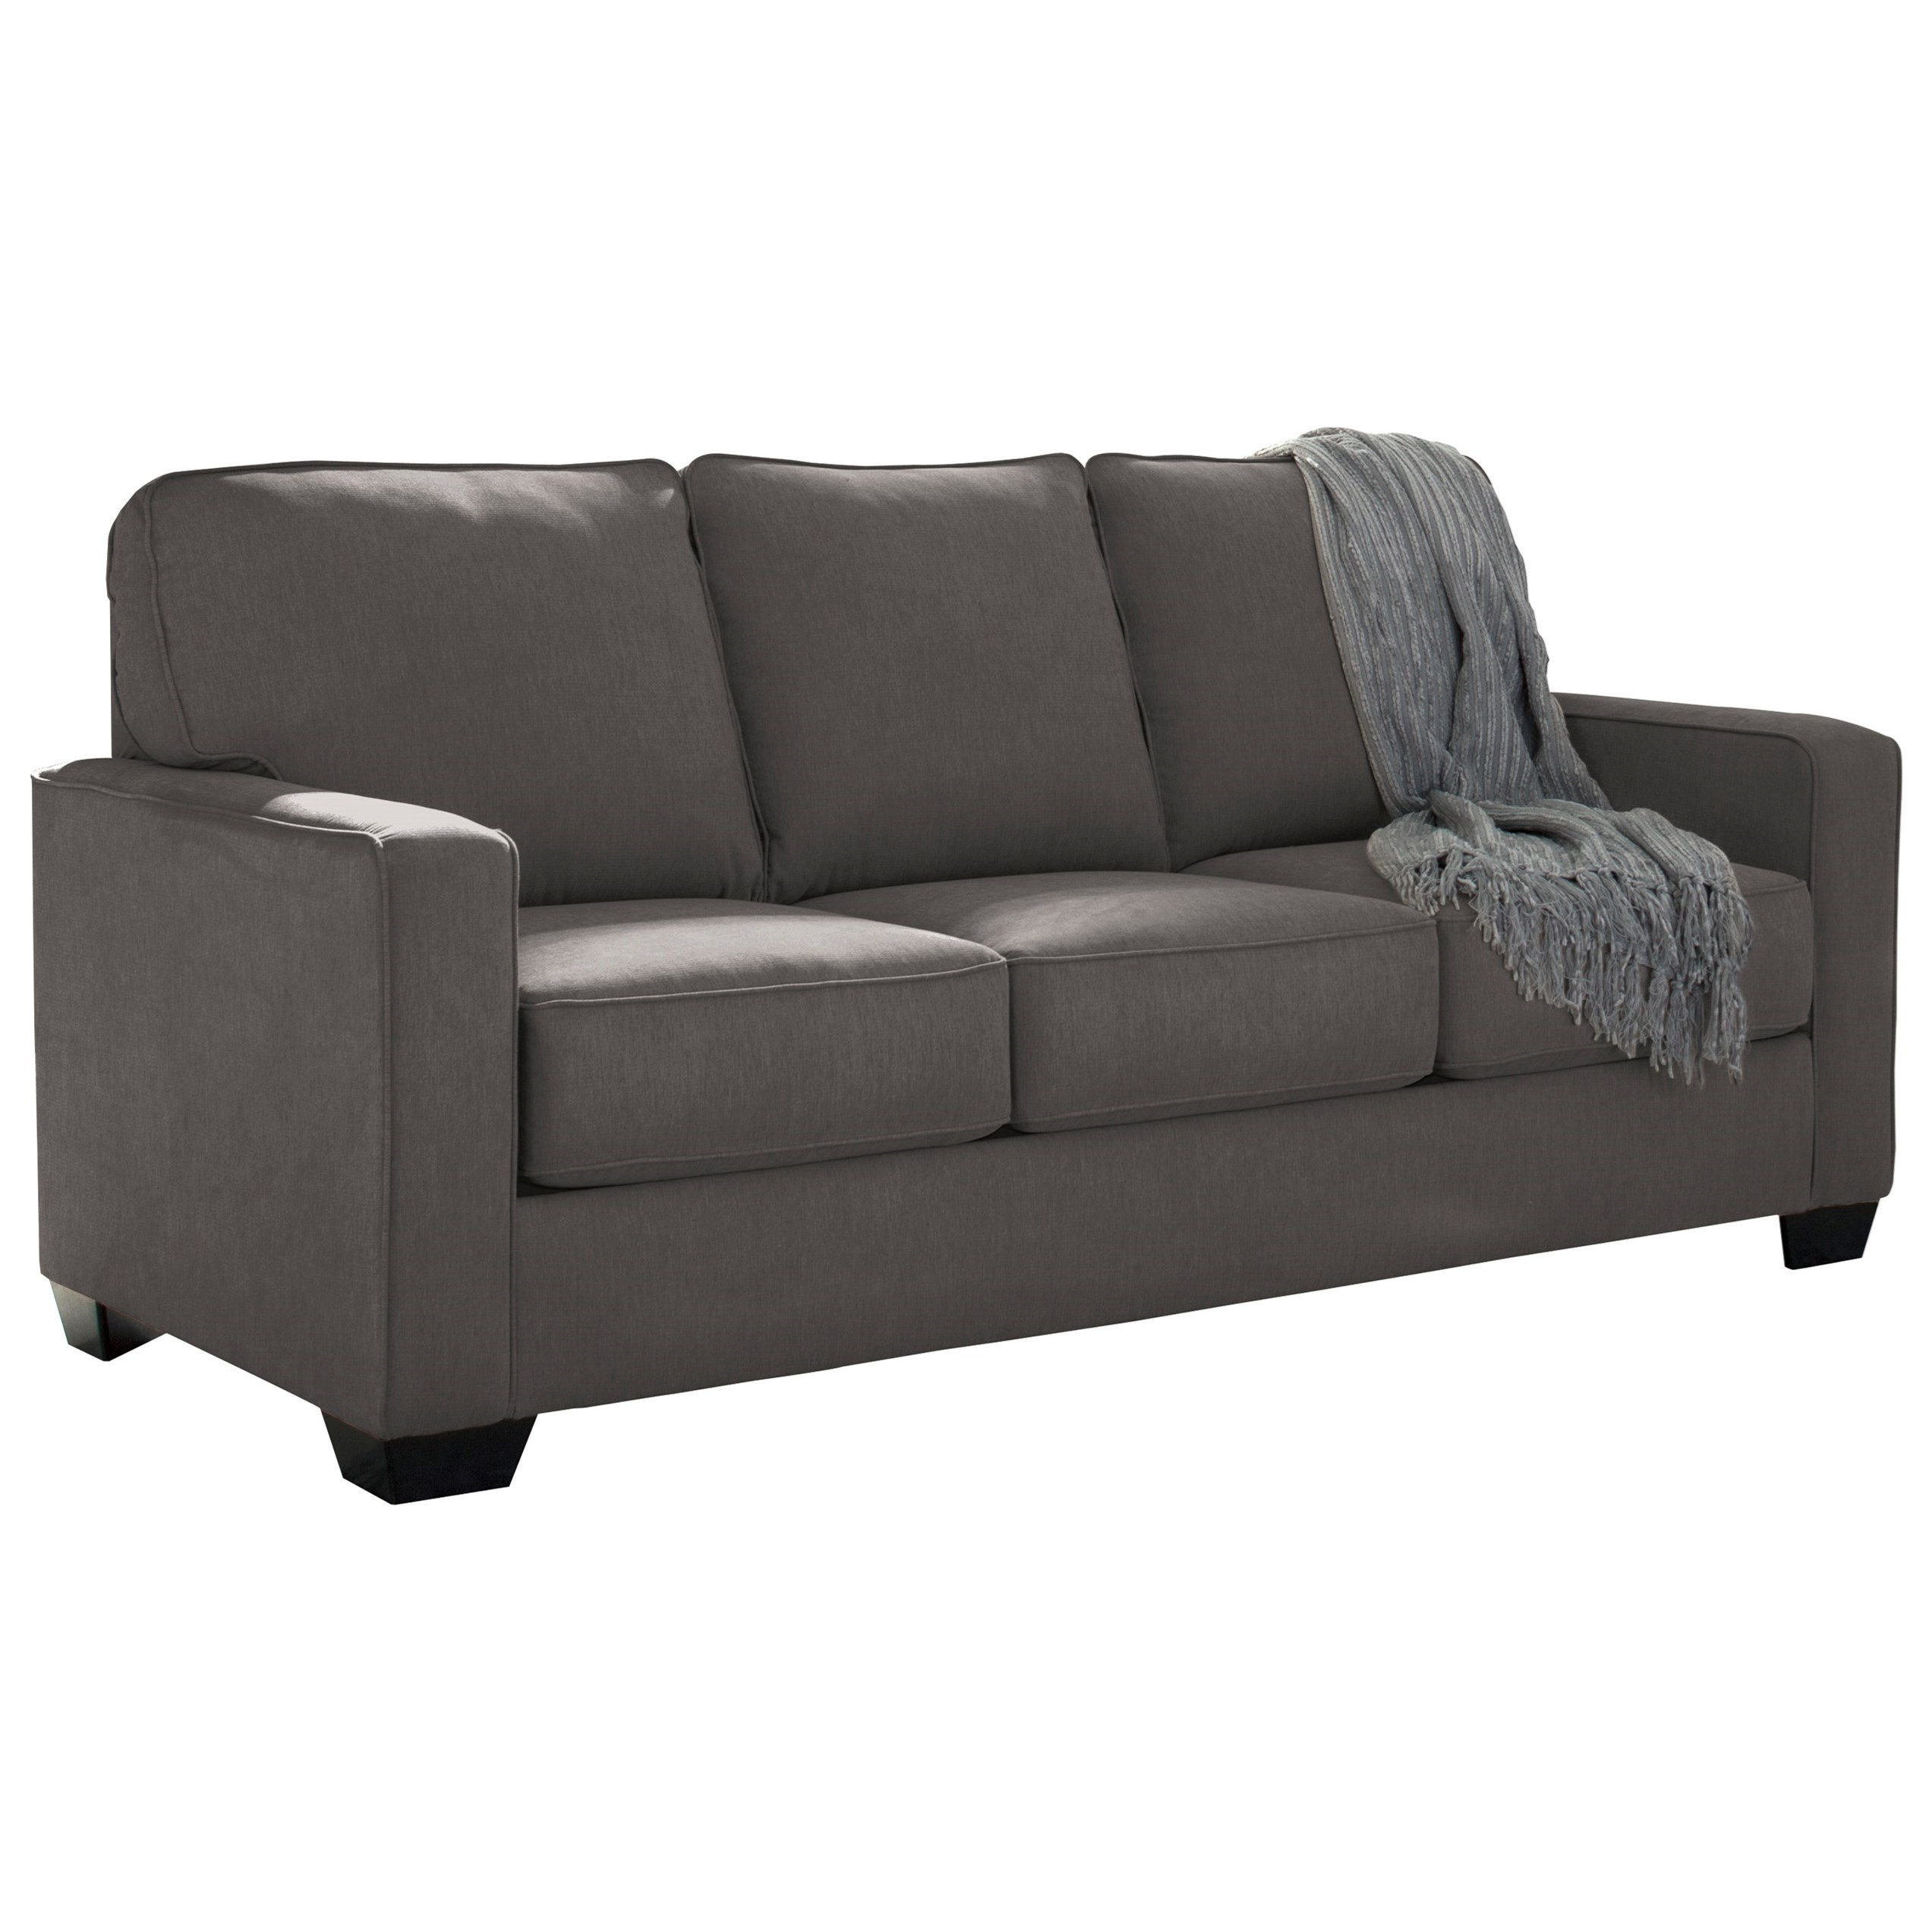 Signature design by ashley zeb full sofa sleeper with for Design sofa outlet